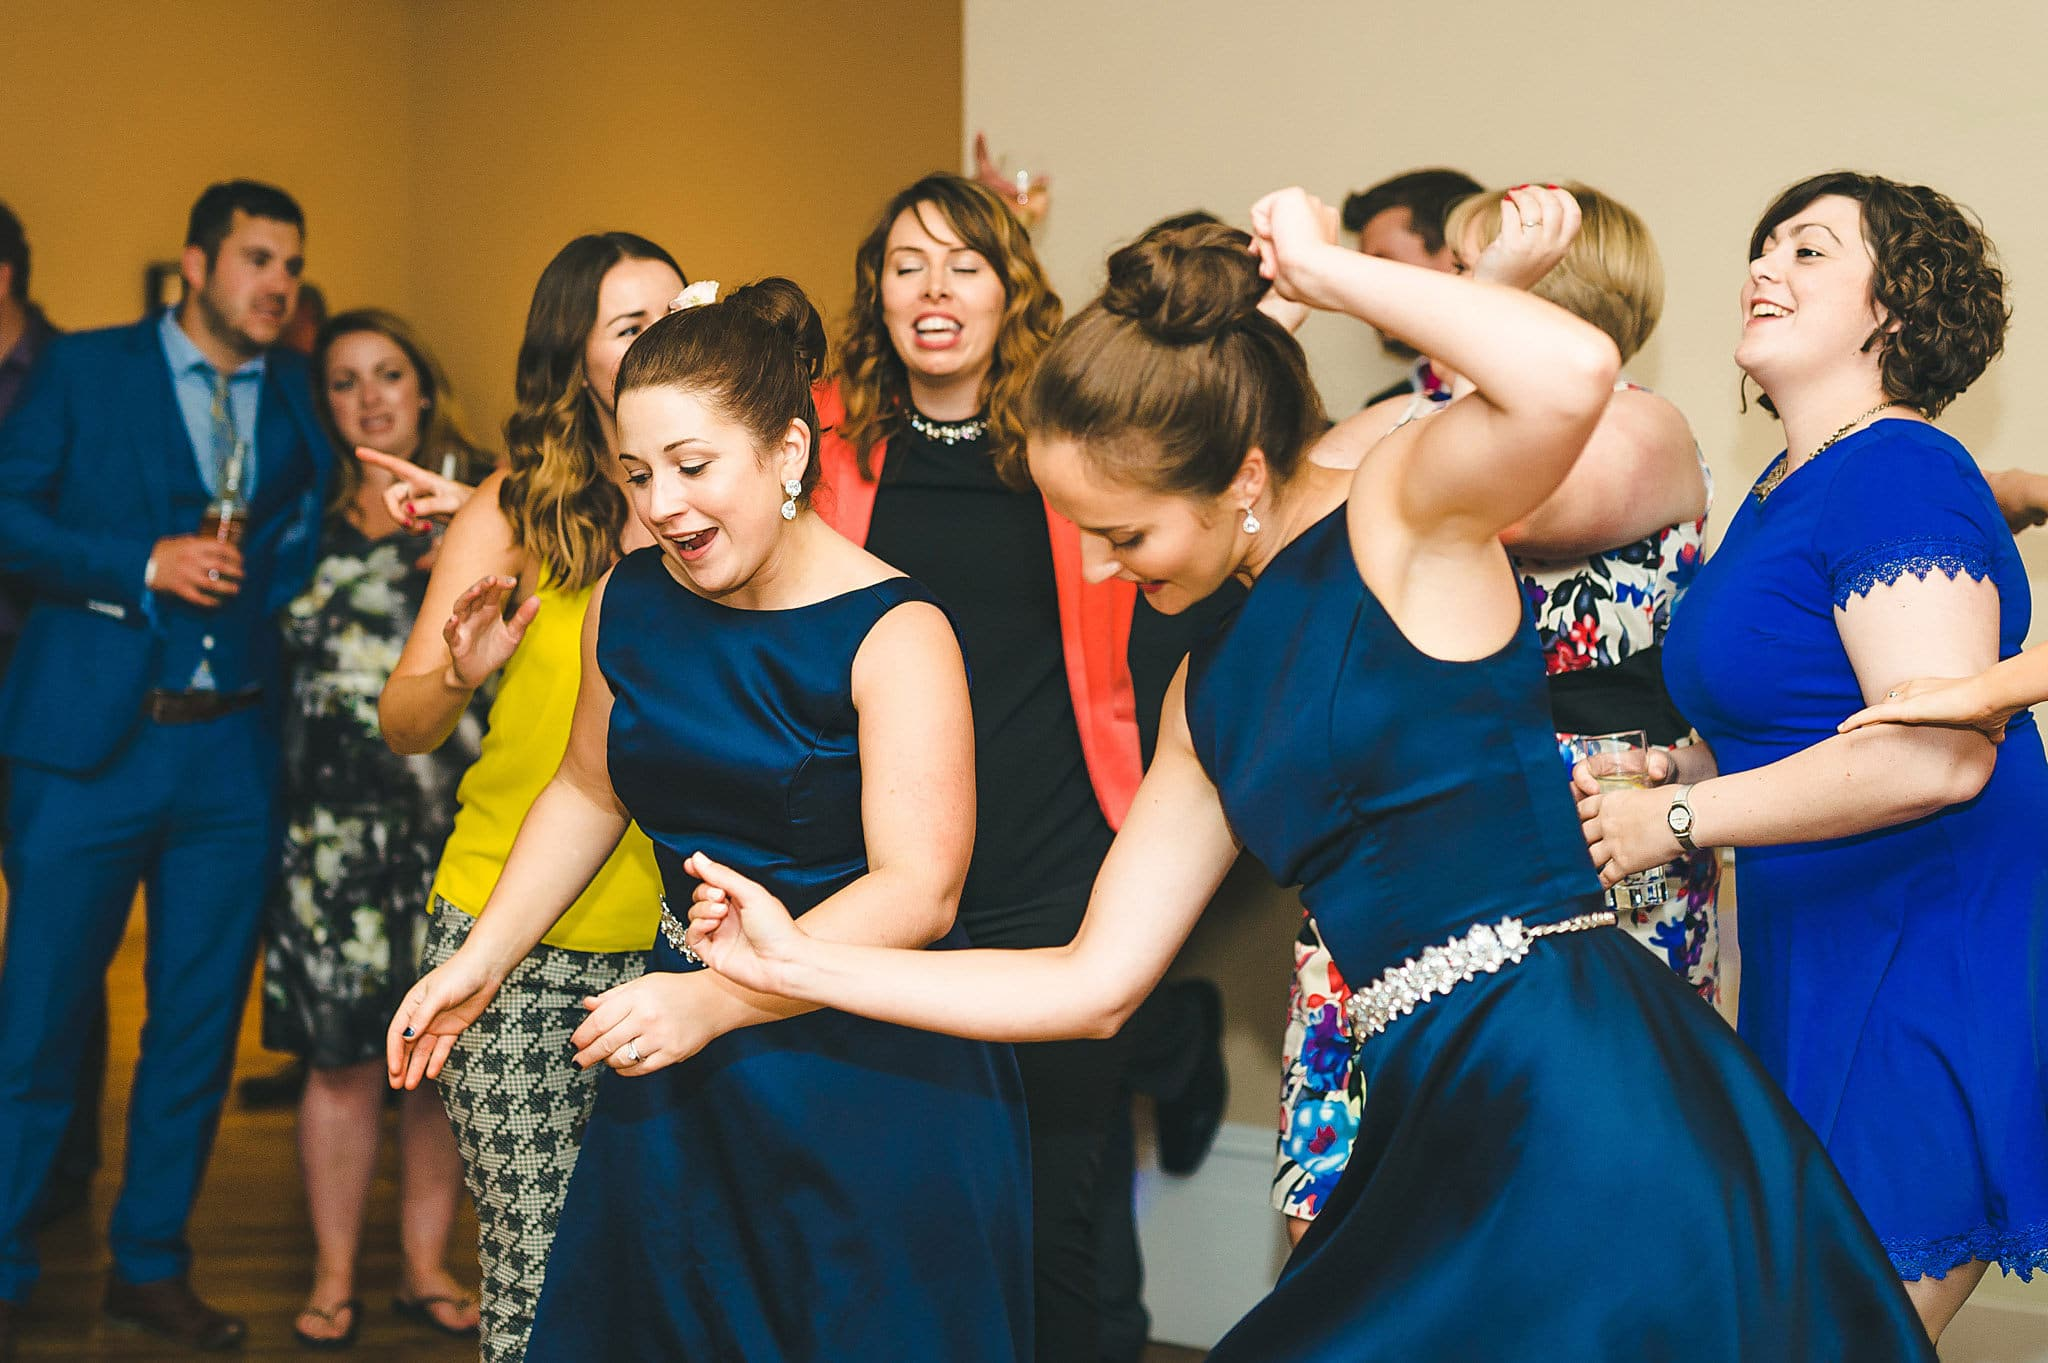 wedding-photography-at-the-cliff-hotel-cardigan (81)